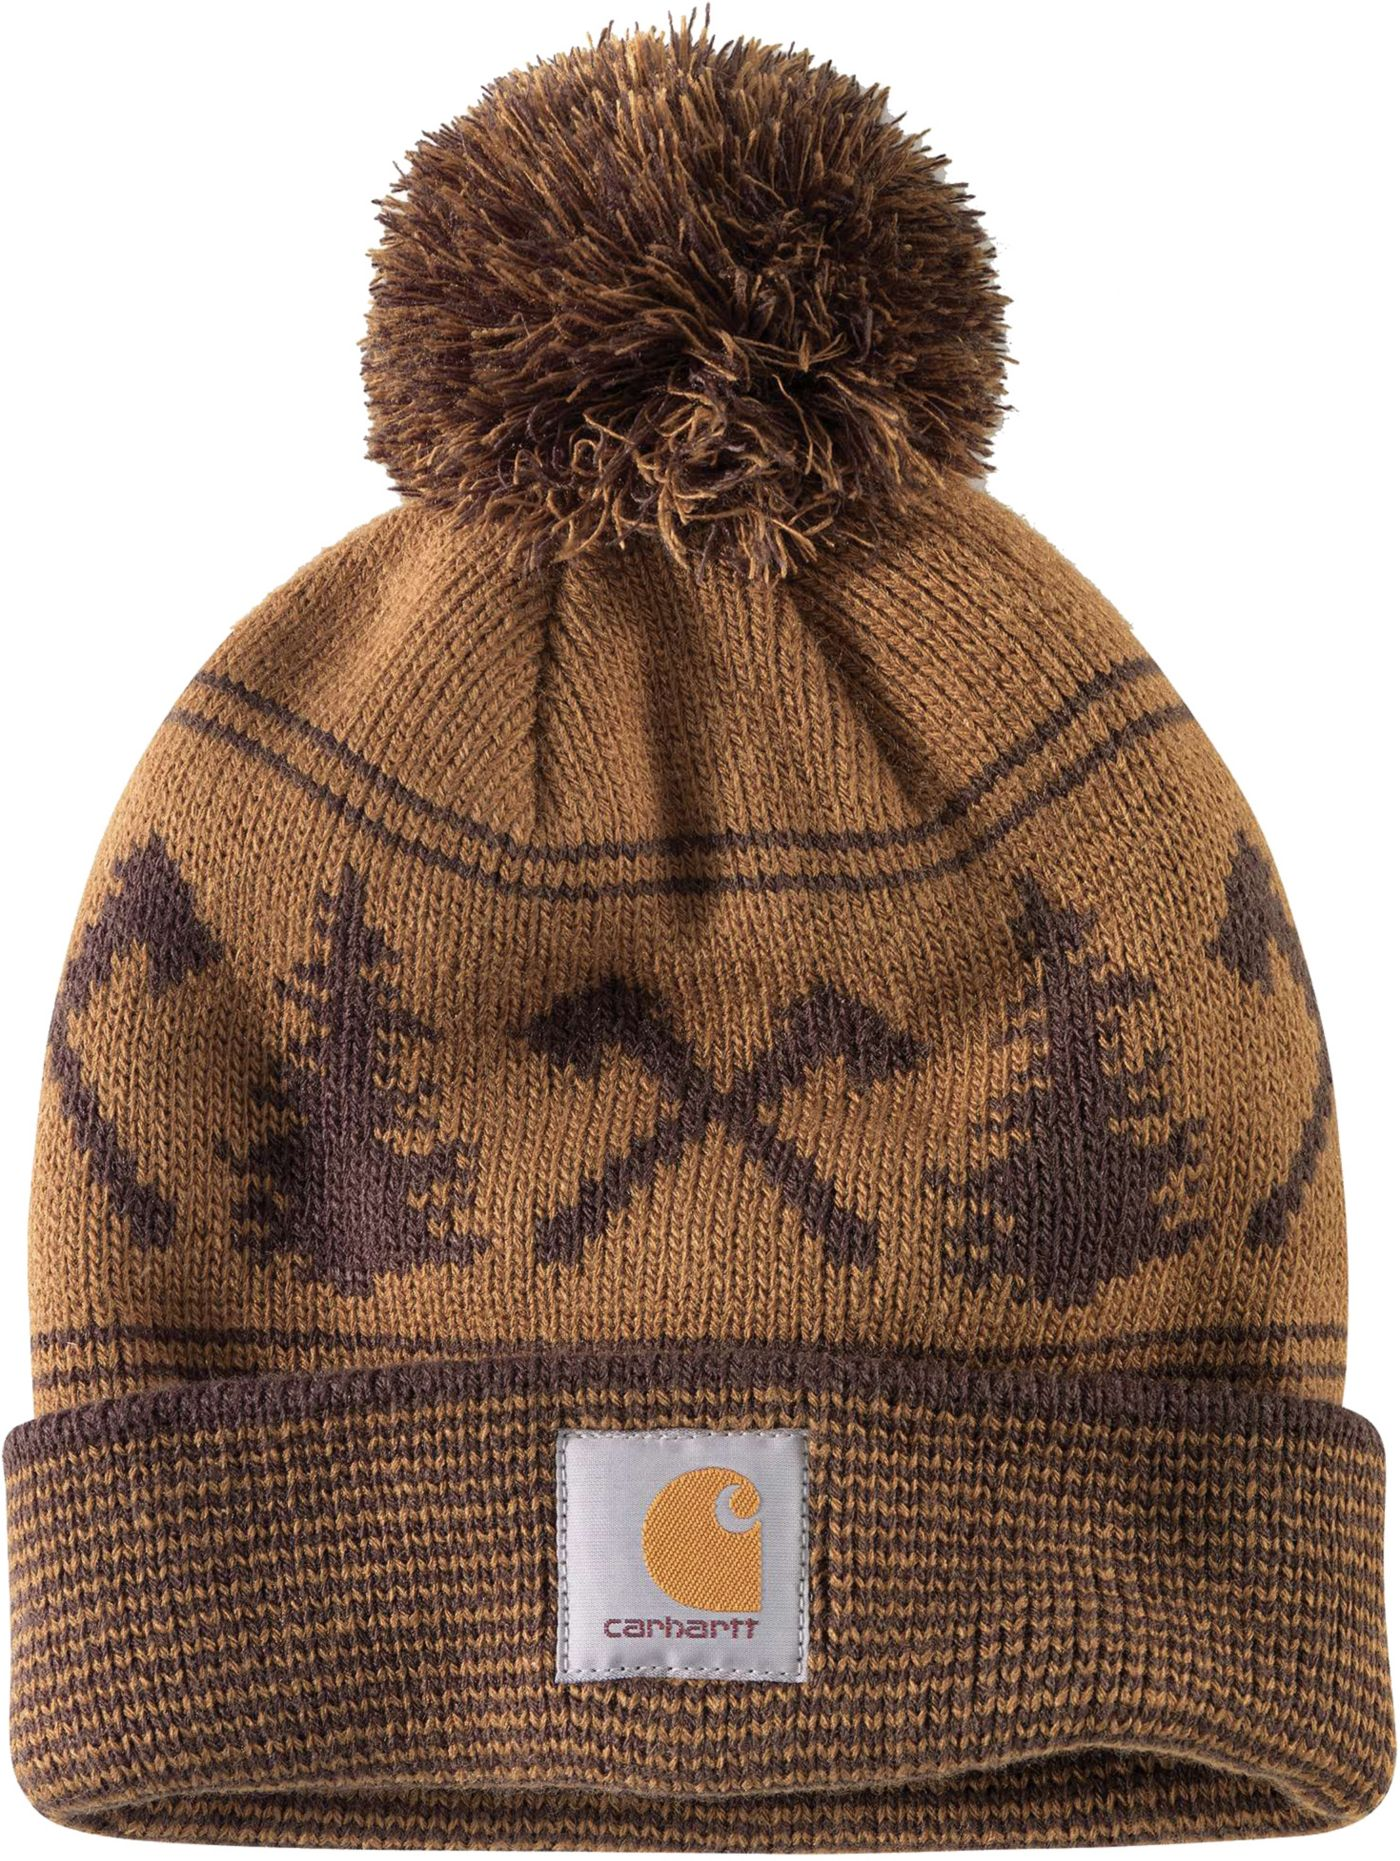 Carhartt Men's Searchlight Rib Knit Hat